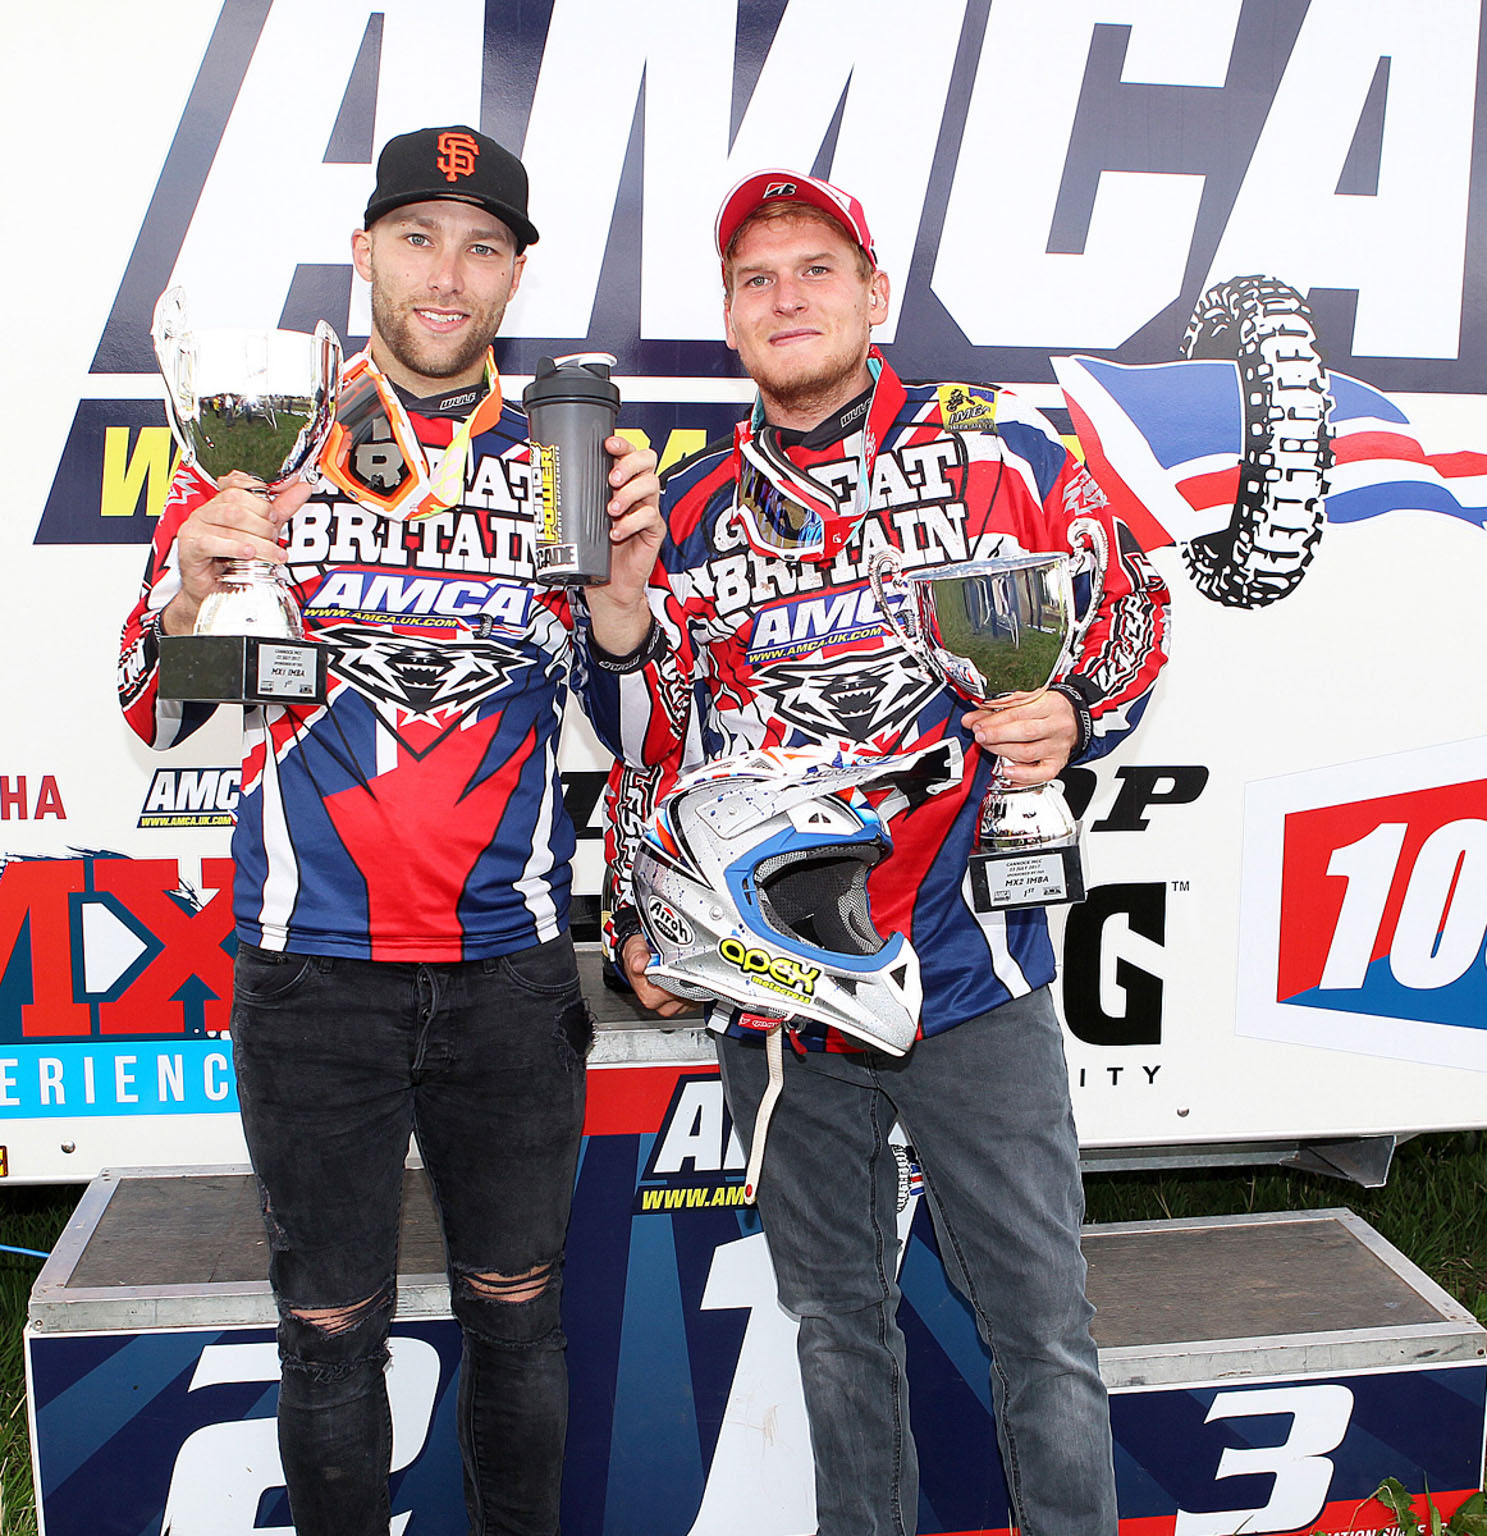 GB winners Luke Burton(MX1) and Ray Rowson(MX2)